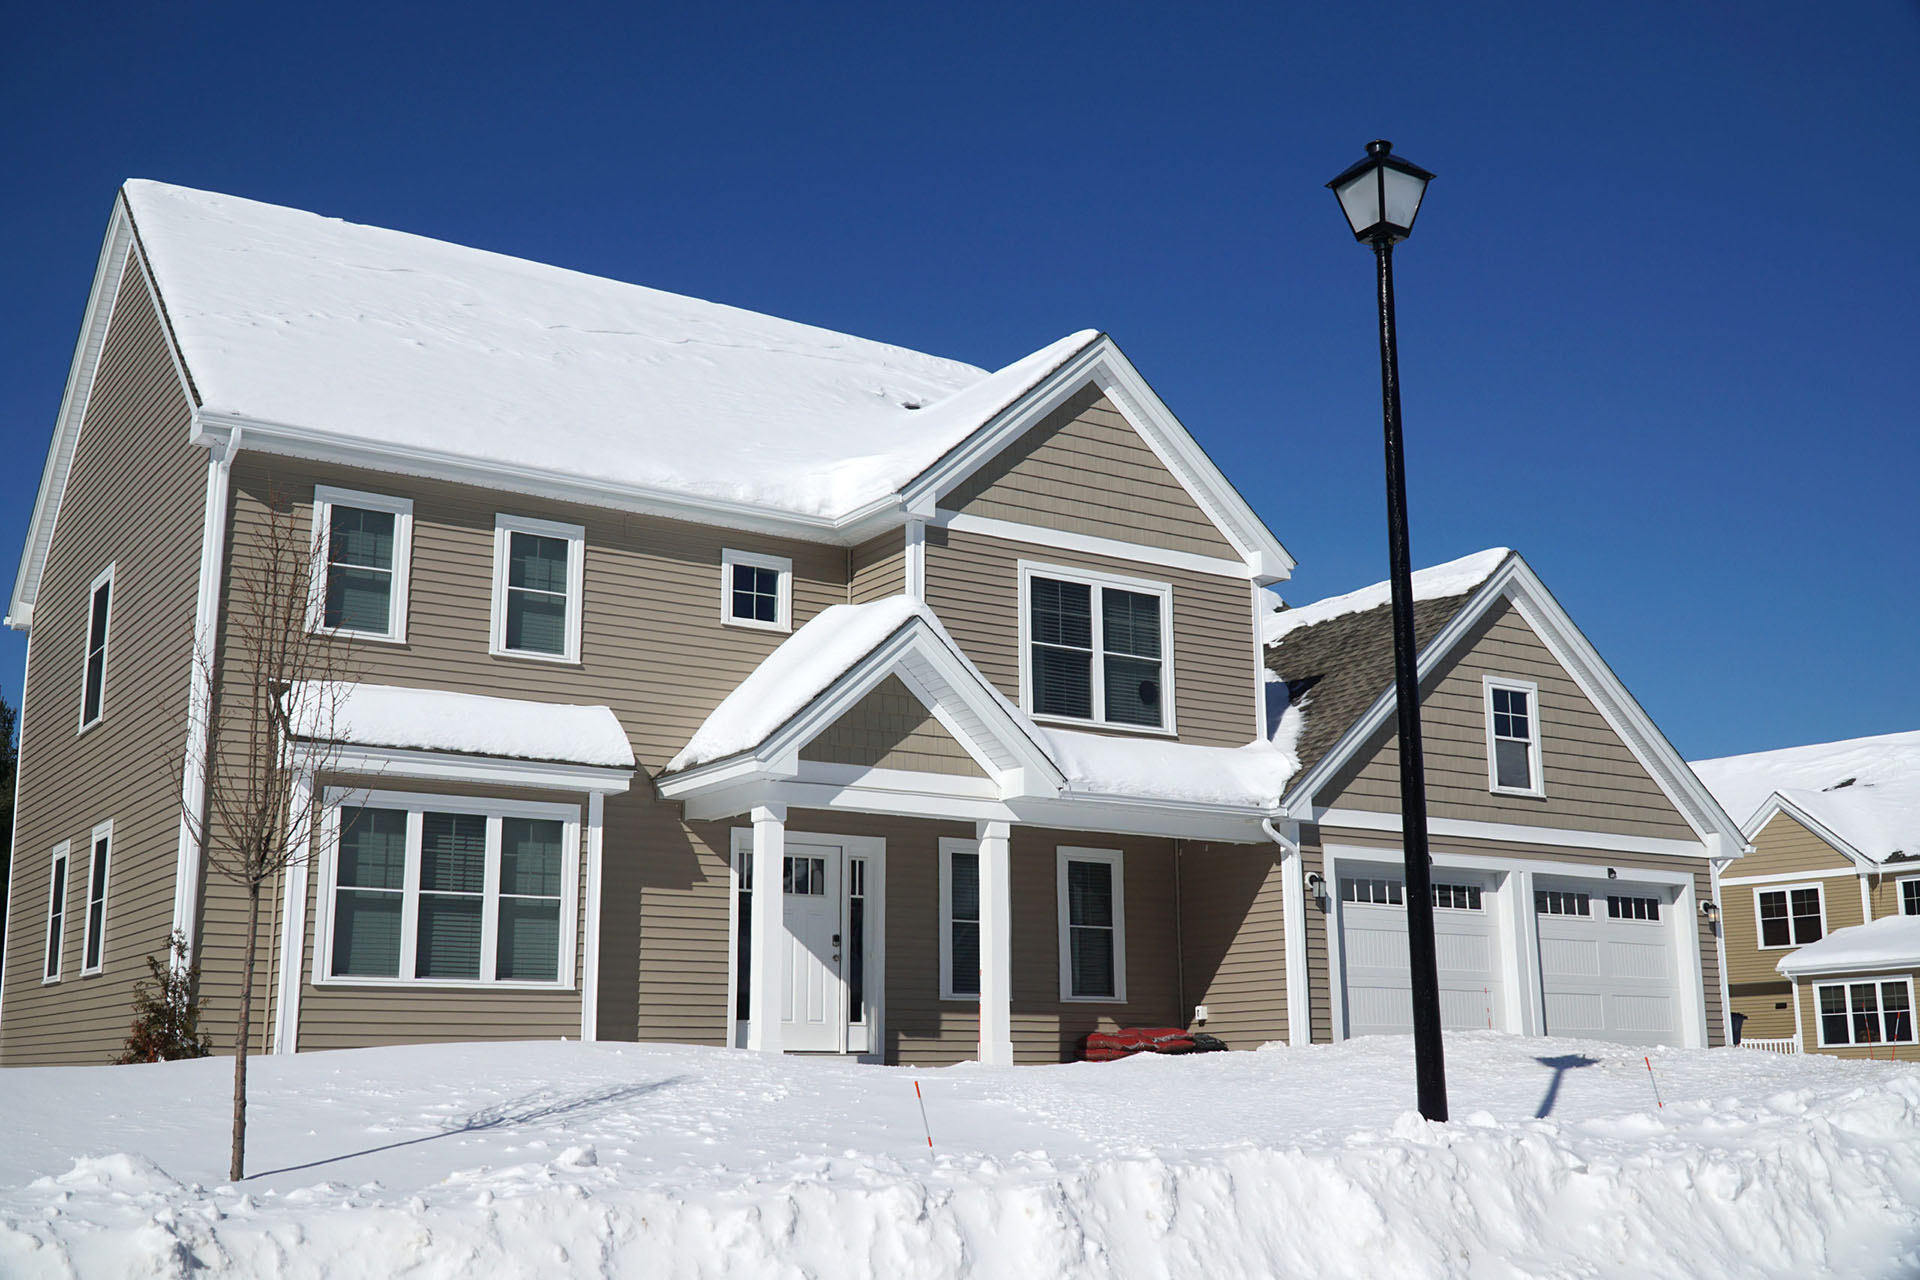 Snow-covered home with tan siding